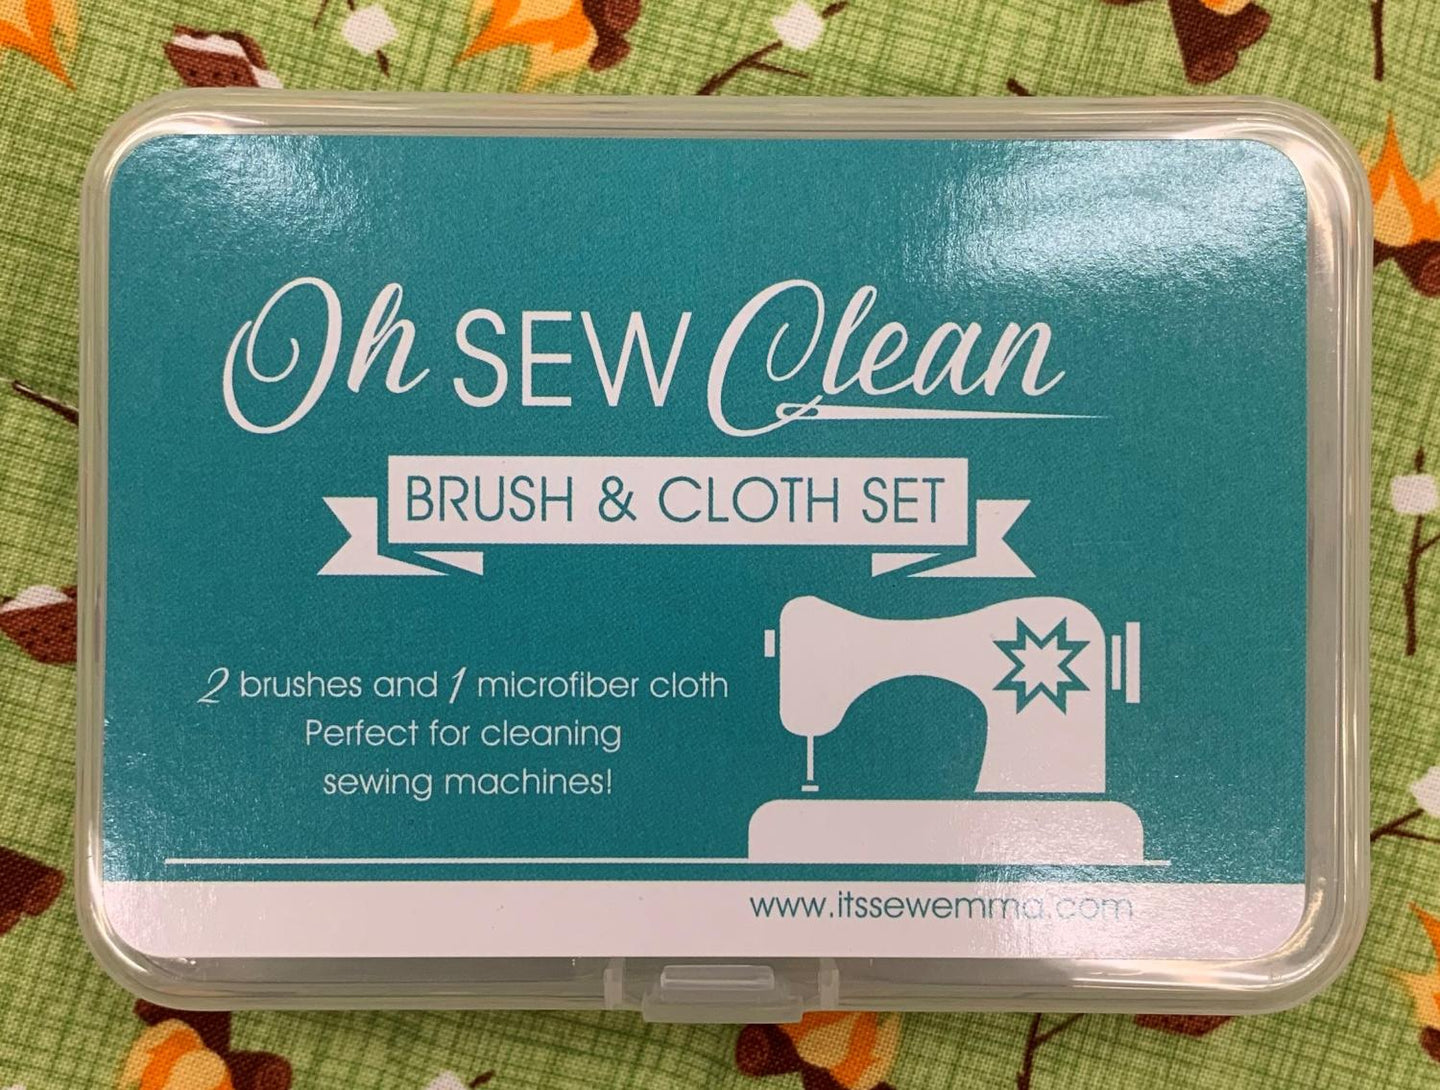 Oh So Clean Brush & Cloth Set